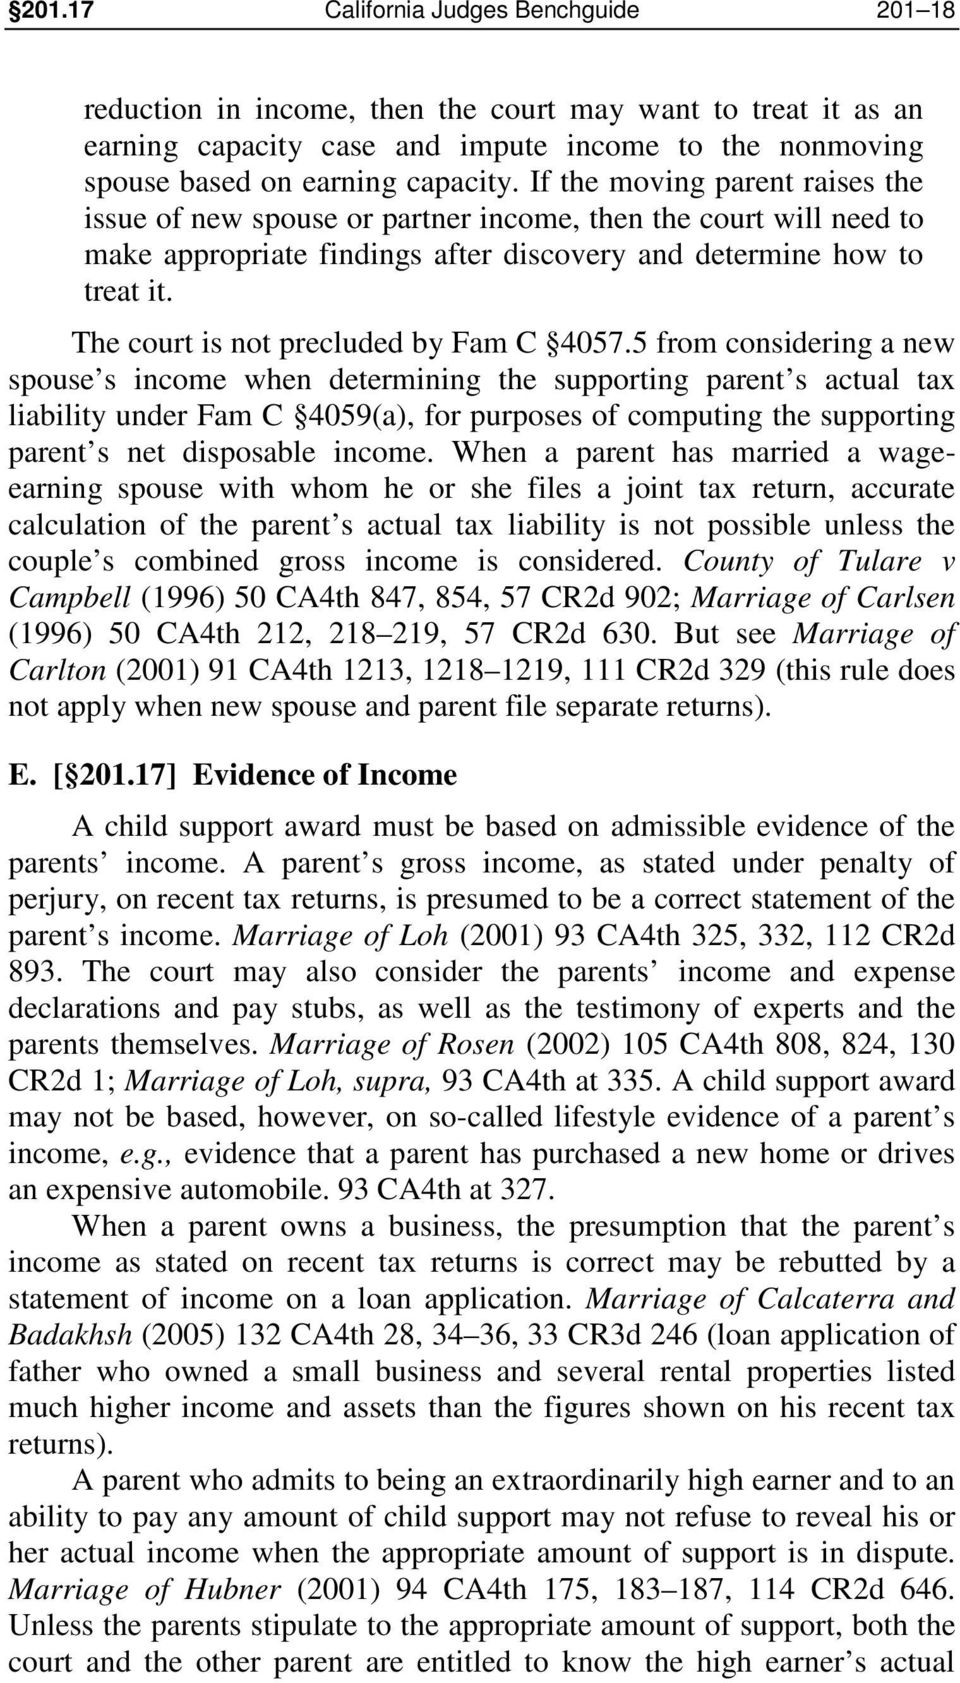 The court is not precluded by Fam C 4057.